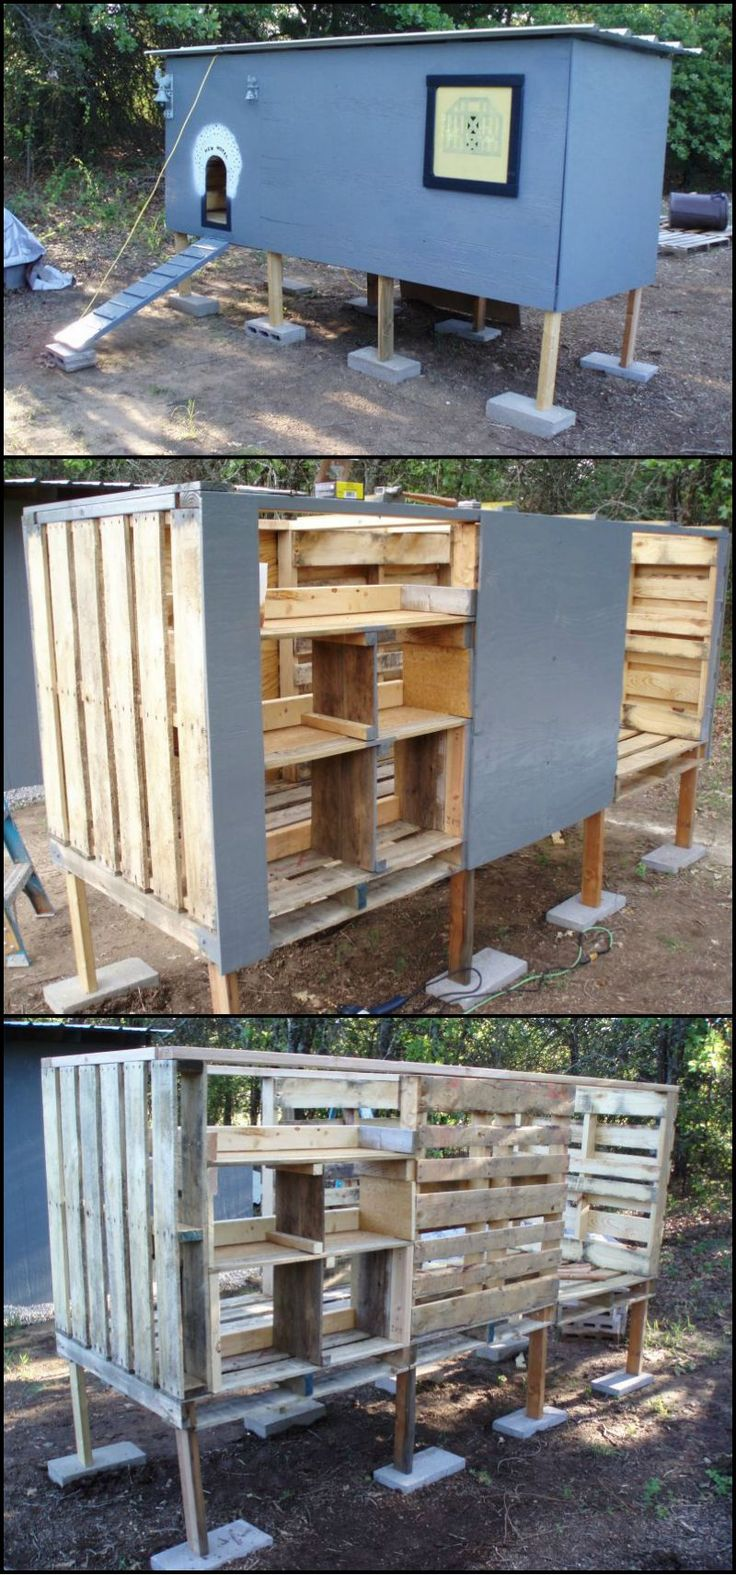 There are lots of beneficial hints for your woodworking projects found at http://www.woodesigner.net